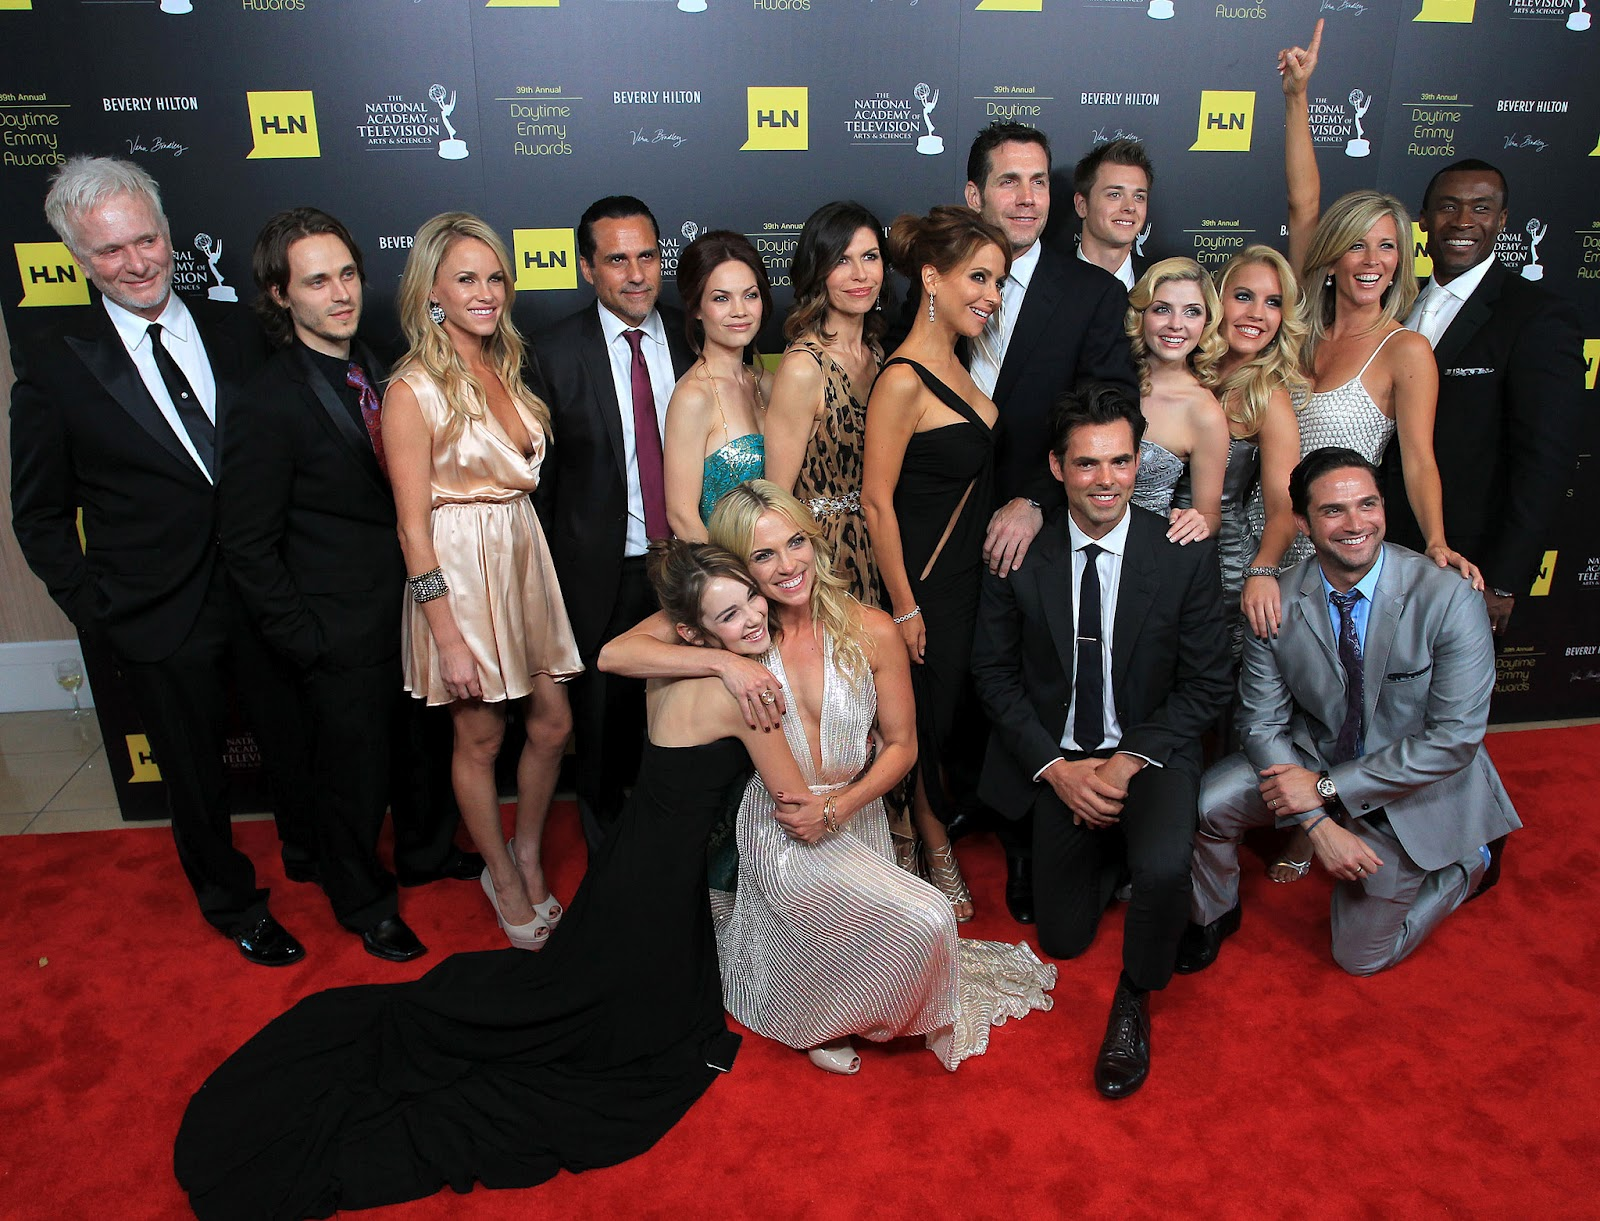 General Hospital Cast at the Daytime Emmys